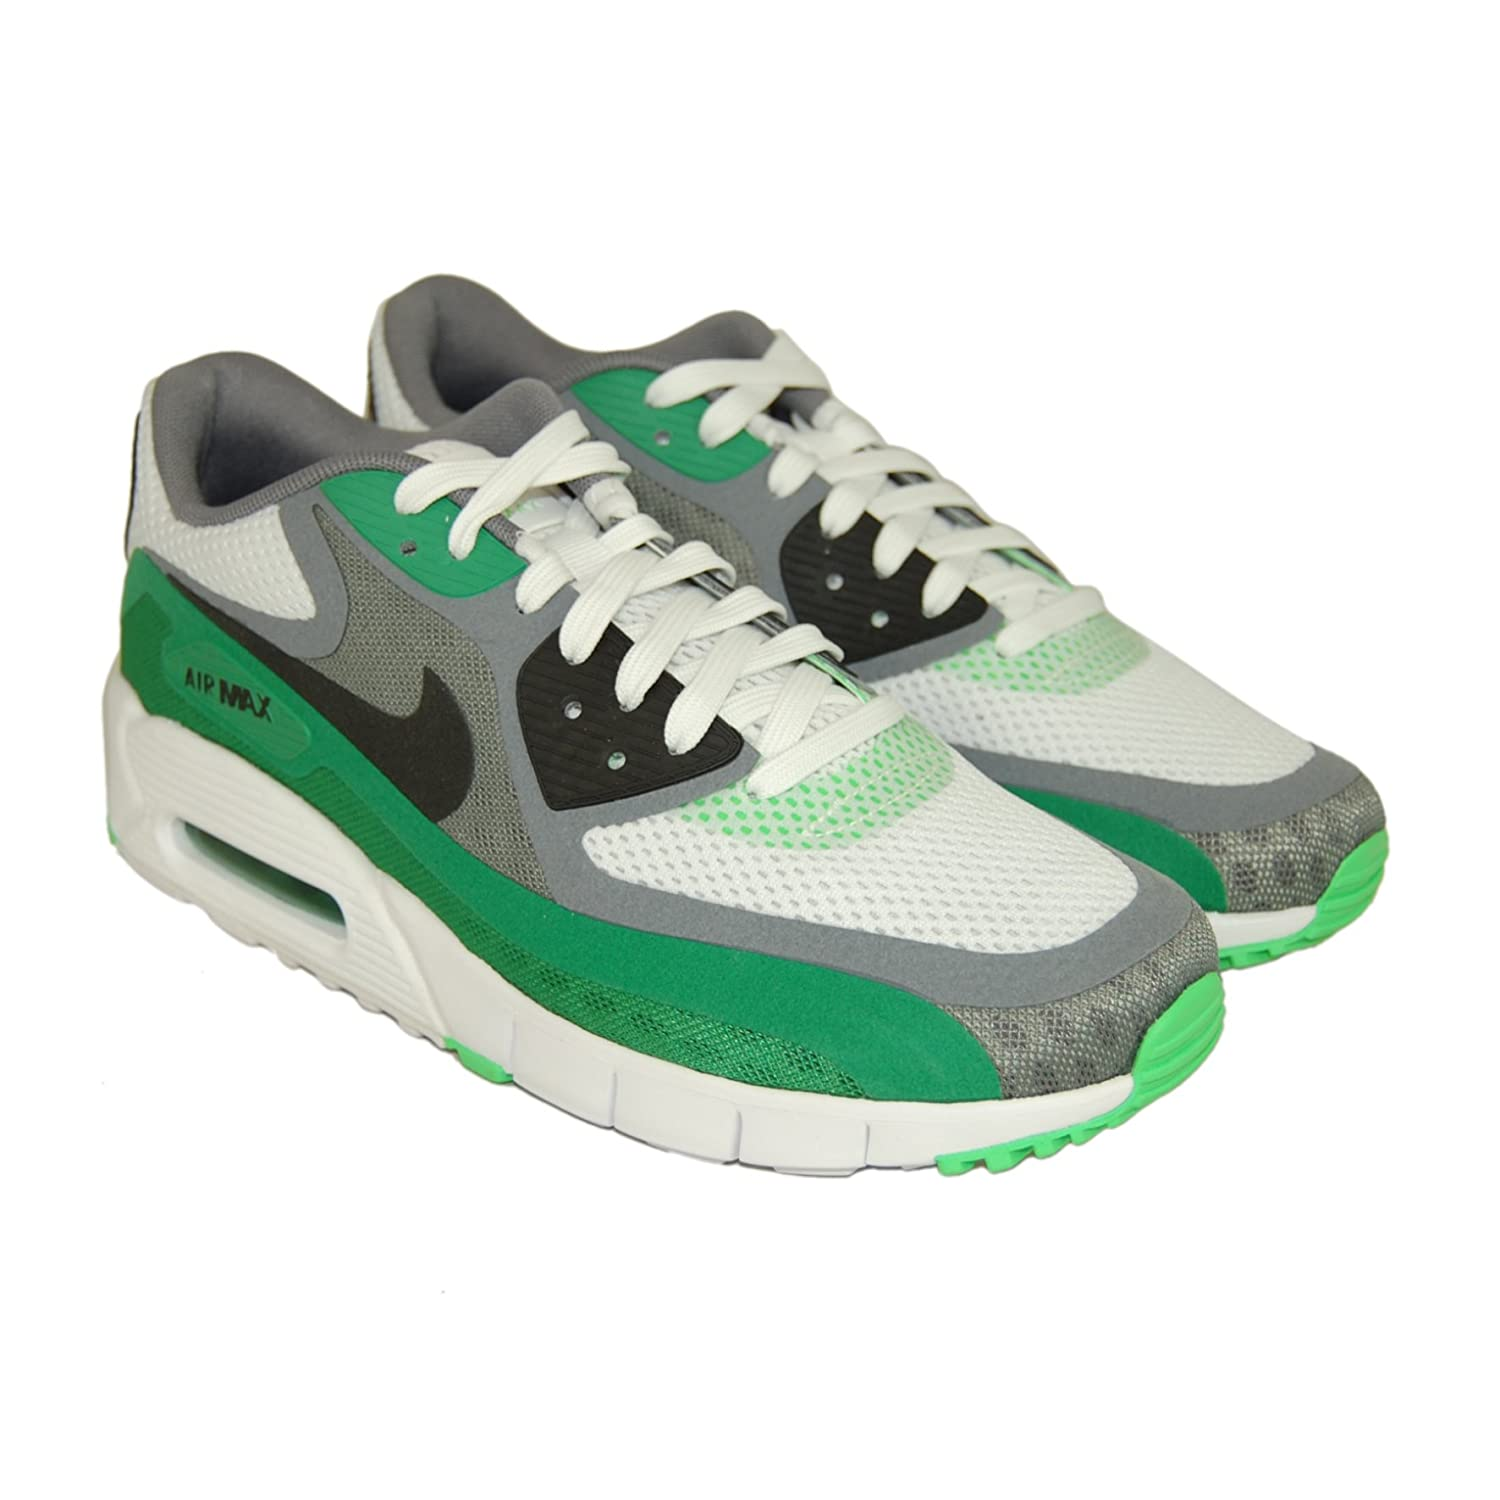 NIKE Men's Air Max 90 Breathe Running Trainers in Green